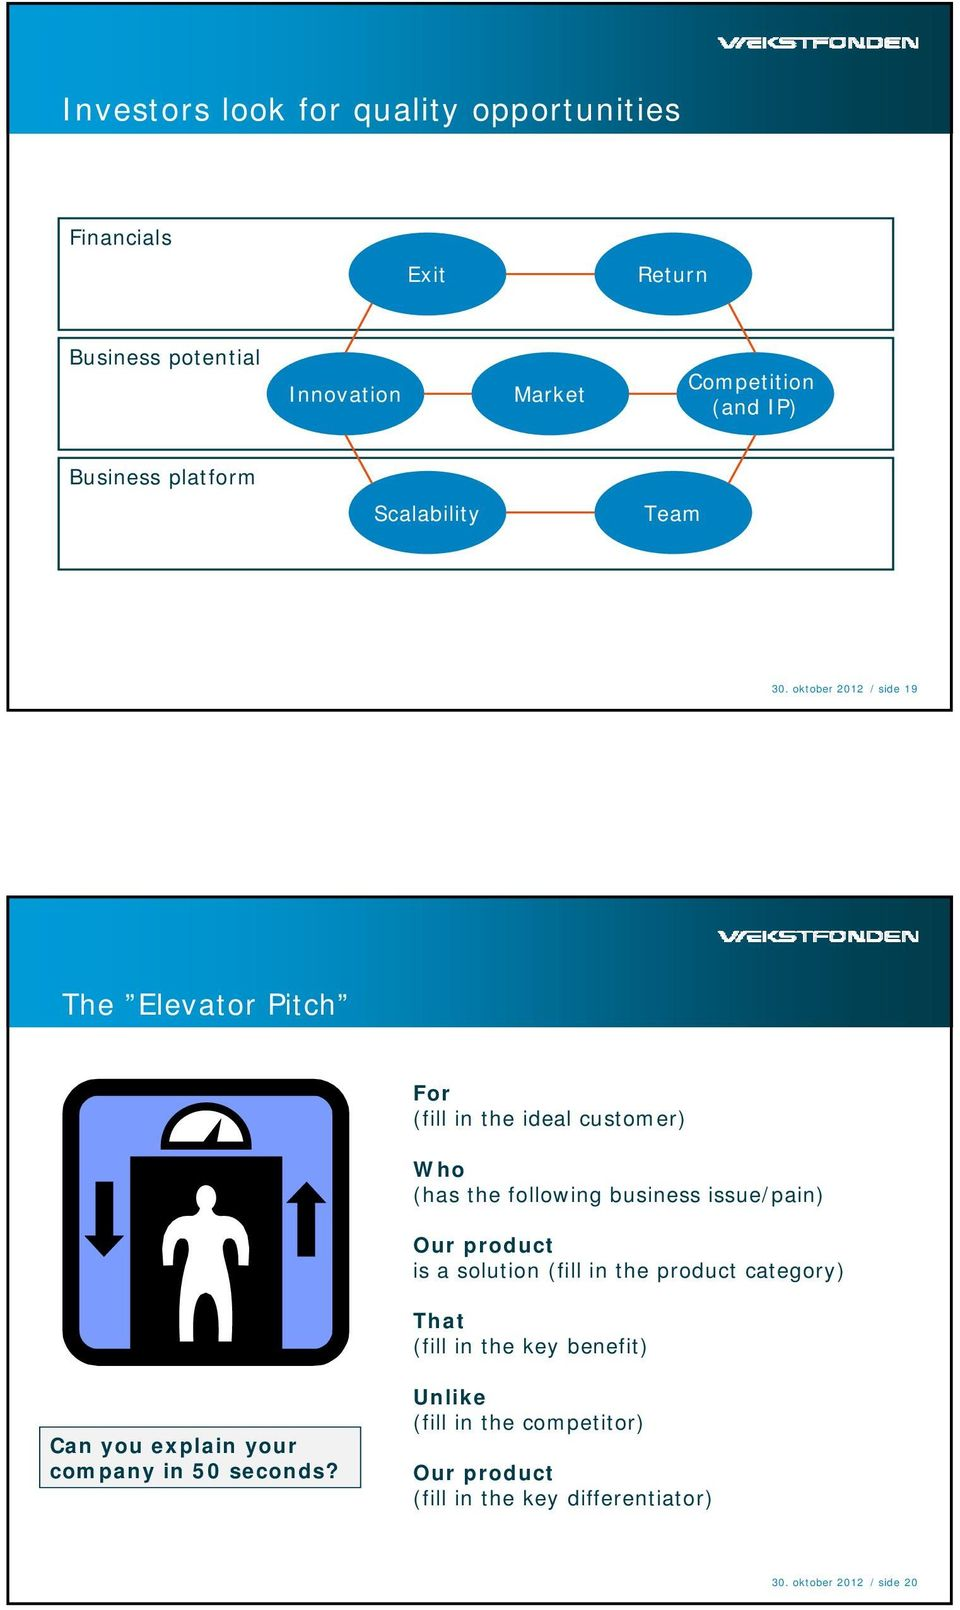 oktober 2012 / side 19 The Elevator Pitch For (fill in the ideal customer) Who (has the following business issue/pain) Our